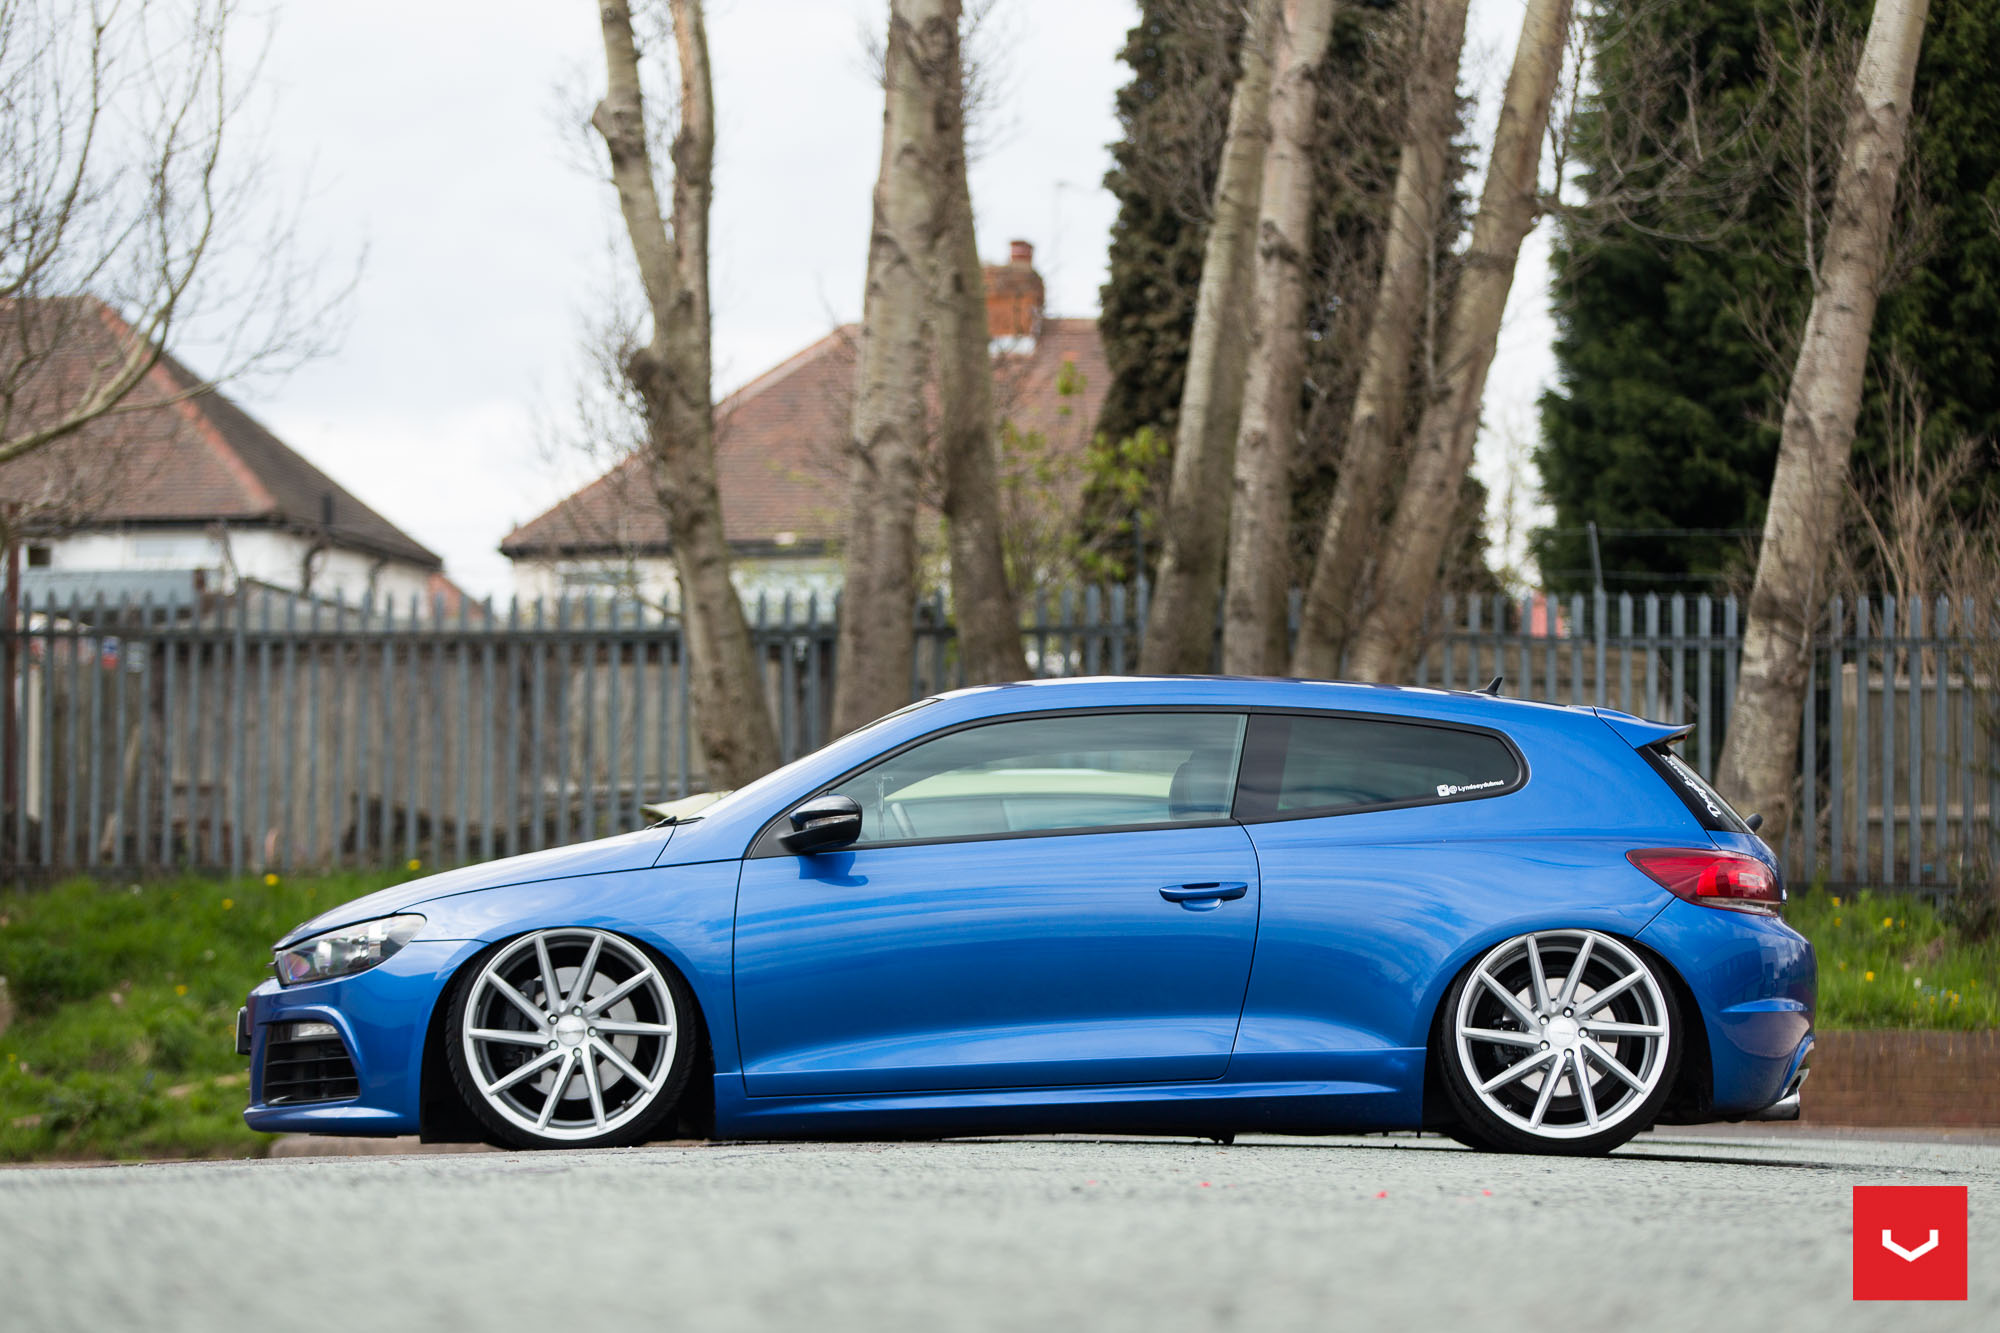 Vw Scirocco On Vossen Cvt And Vle 1 Wheels Showcased In